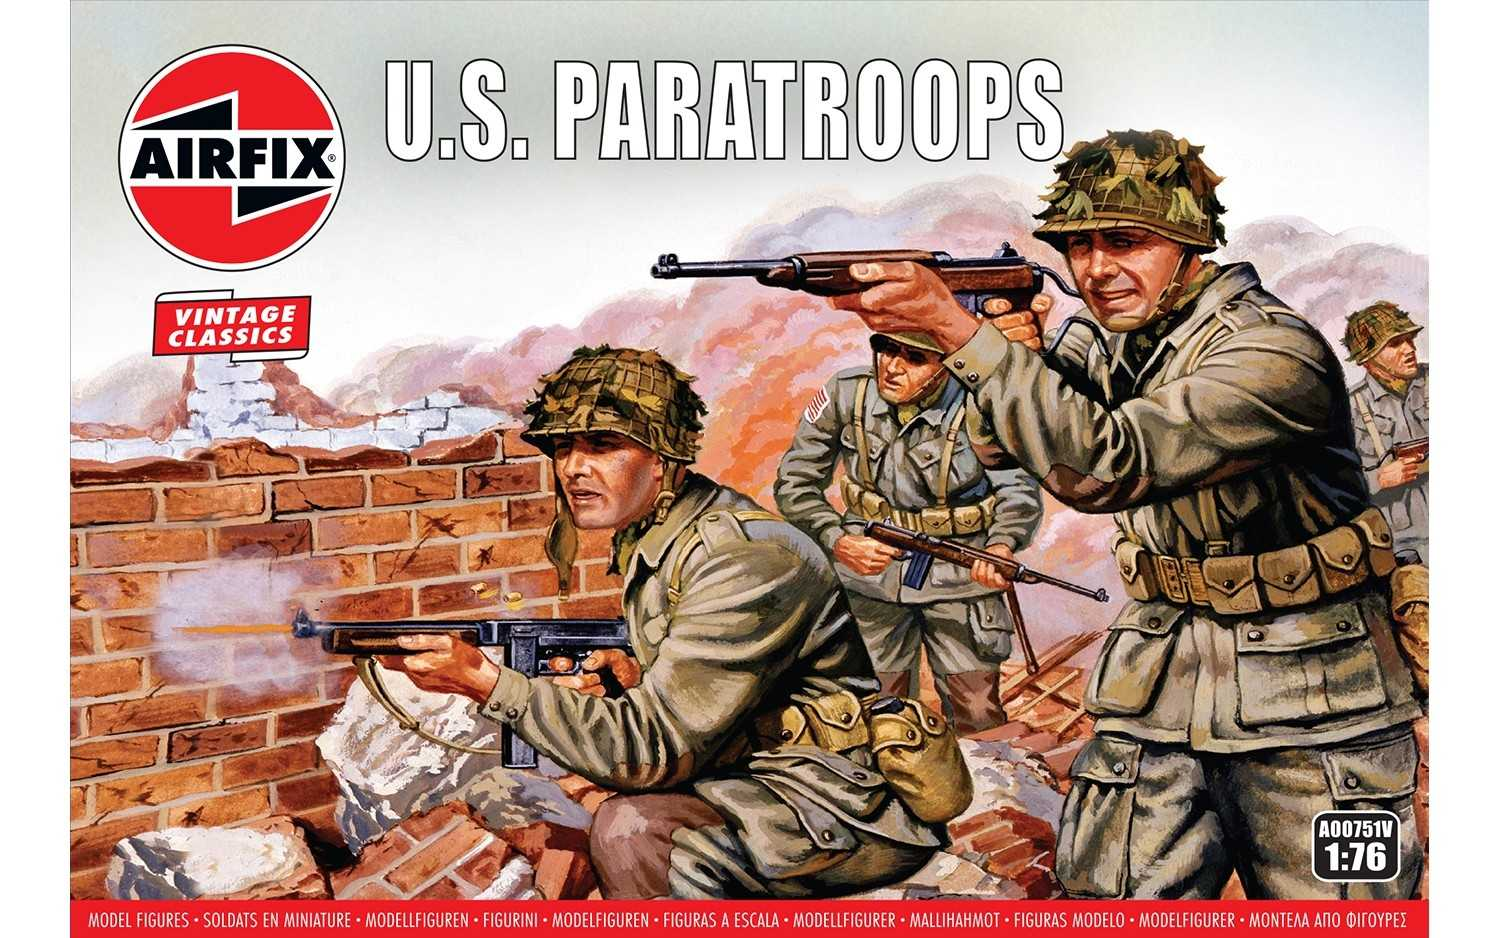 1:76 U.S. Paratroops (Classic Kit VINTAGE Military)